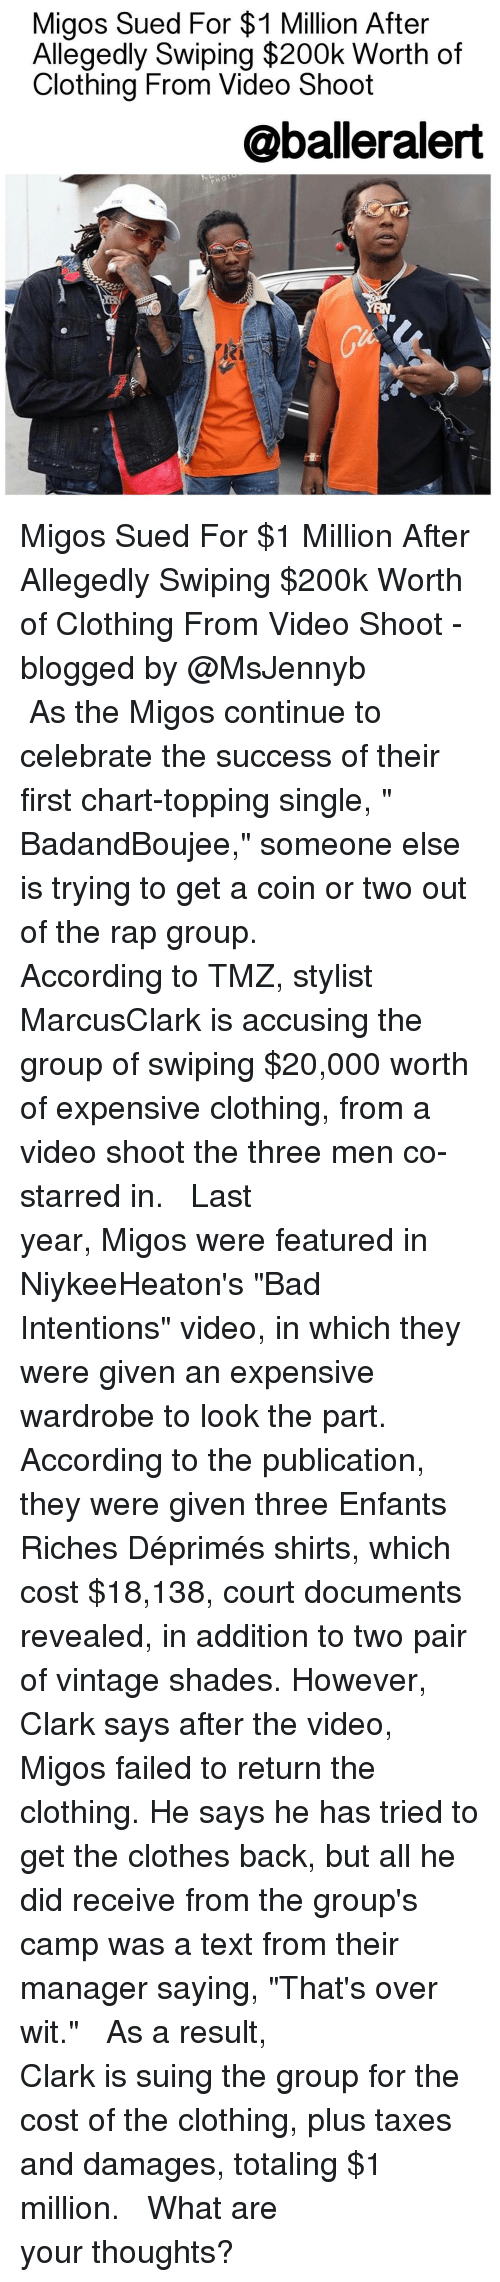 "Baller Alert, Memes, and Charts: Migos Sued For $1 Million After  Allegedly Swiping $200k Worth of  Clothing From Video Shoot  @baller alert Migos Sued For $1 Million After Allegedly Swiping $200k Worth of Clothing From Video Shoot - blogged by @MsJennyb ⠀⠀⠀⠀⠀⠀⠀⠀⠀ ⠀⠀⠀⠀⠀⠀⠀⠀⠀ As the Migos continue to celebrate the success of their first chart-topping single, "" BadandBoujee,"" someone else is trying to get a coin or two out of the rap group. ⠀⠀⠀⠀⠀⠀⠀⠀⠀ ⠀⠀⠀⠀⠀⠀⠀⠀⠀ According to TMZ, stylist MarcusClark is accusing the group of swiping $20,000 worth of expensive clothing, from a video shoot the three men co-starred in. ⠀⠀⠀⠀⠀⠀⠀⠀⠀ ⠀⠀⠀⠀⠀⠀⠀⠀⠀ Last year, Migos were featured in NiykeeHeaton's ""Bad Intentions"" video, in which they were given an expensive wardrobe to look the part. According to the publication, they were given three Enfants Riches Déprimés shirts, which cost $18,138, court documents revealed, in addition to two pair of vintage shades. However, Clark says after the video, Migos failed to return the clothing. He says he has tried to get the clothes back, but all he did receive from the group's camp was a text from their manager saying, ""That's over wit."" ⠀⠀⠀⠀⠀⠀⠀⠀⠀ ⠀⠀⠀⠀⠀⠀⠀⠀⠀ As a result, Clark is suing the group for the cost of the clothing, plus taxes and damages, totaling $1 million. ⠀⠀⠀⠀⠀⠀⠀⠀⠀ ⠀⠀⠀⠀⠀⠀⠀⠀⠀ What are your thoughts?"